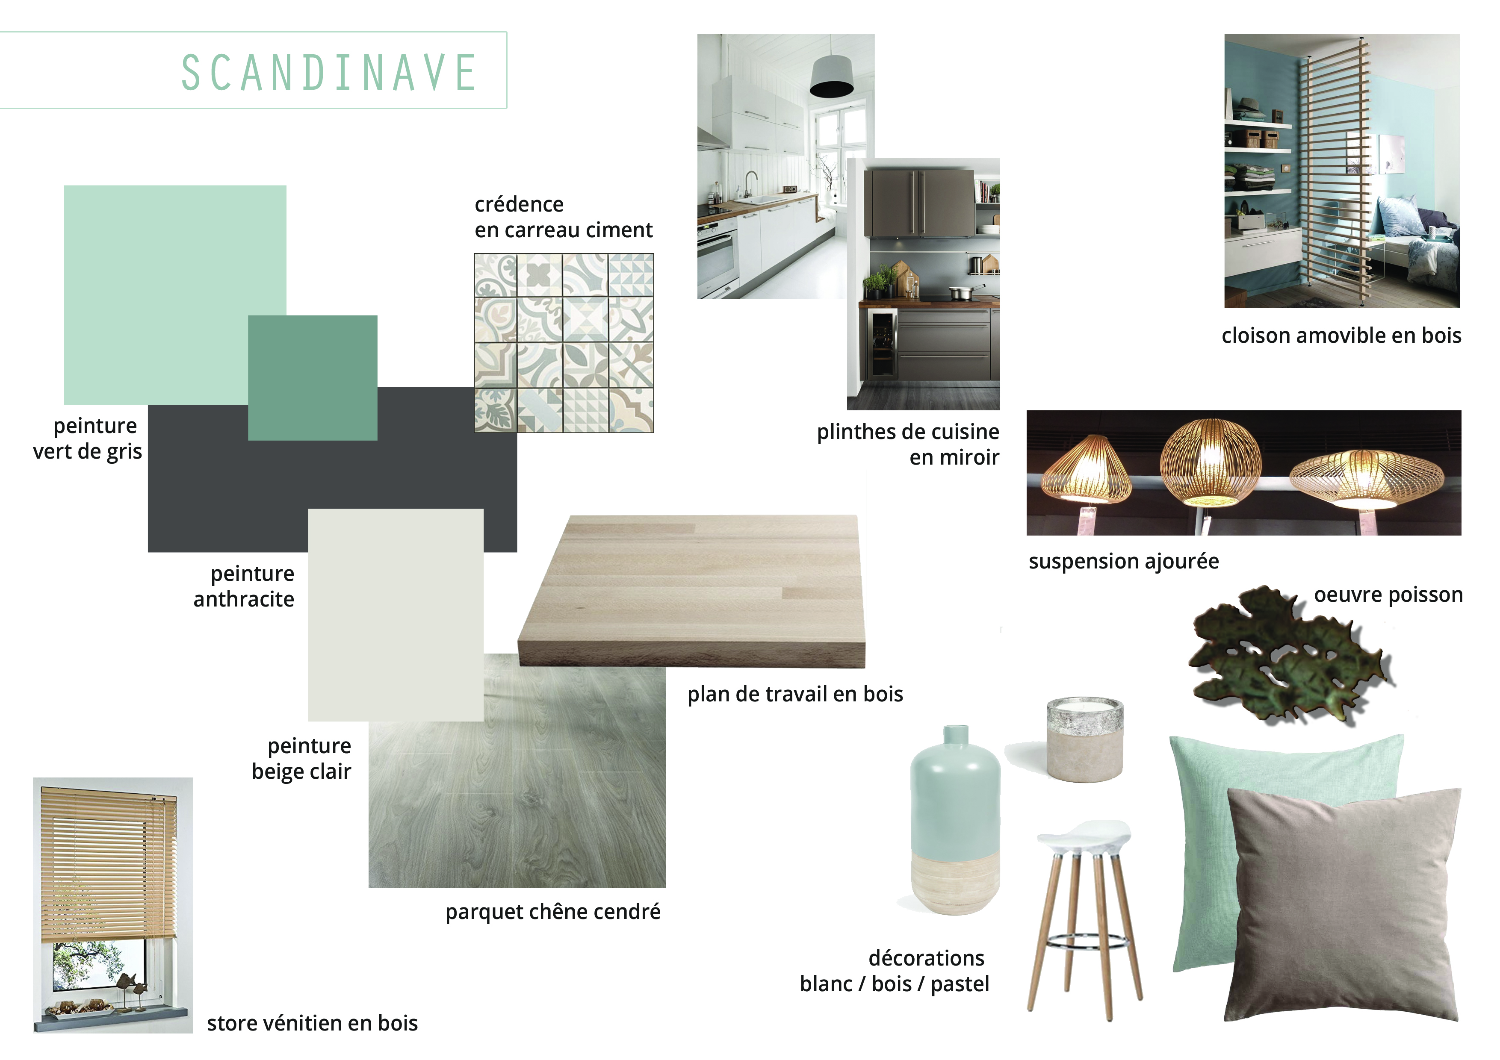 5 tendance scandinave2_edited